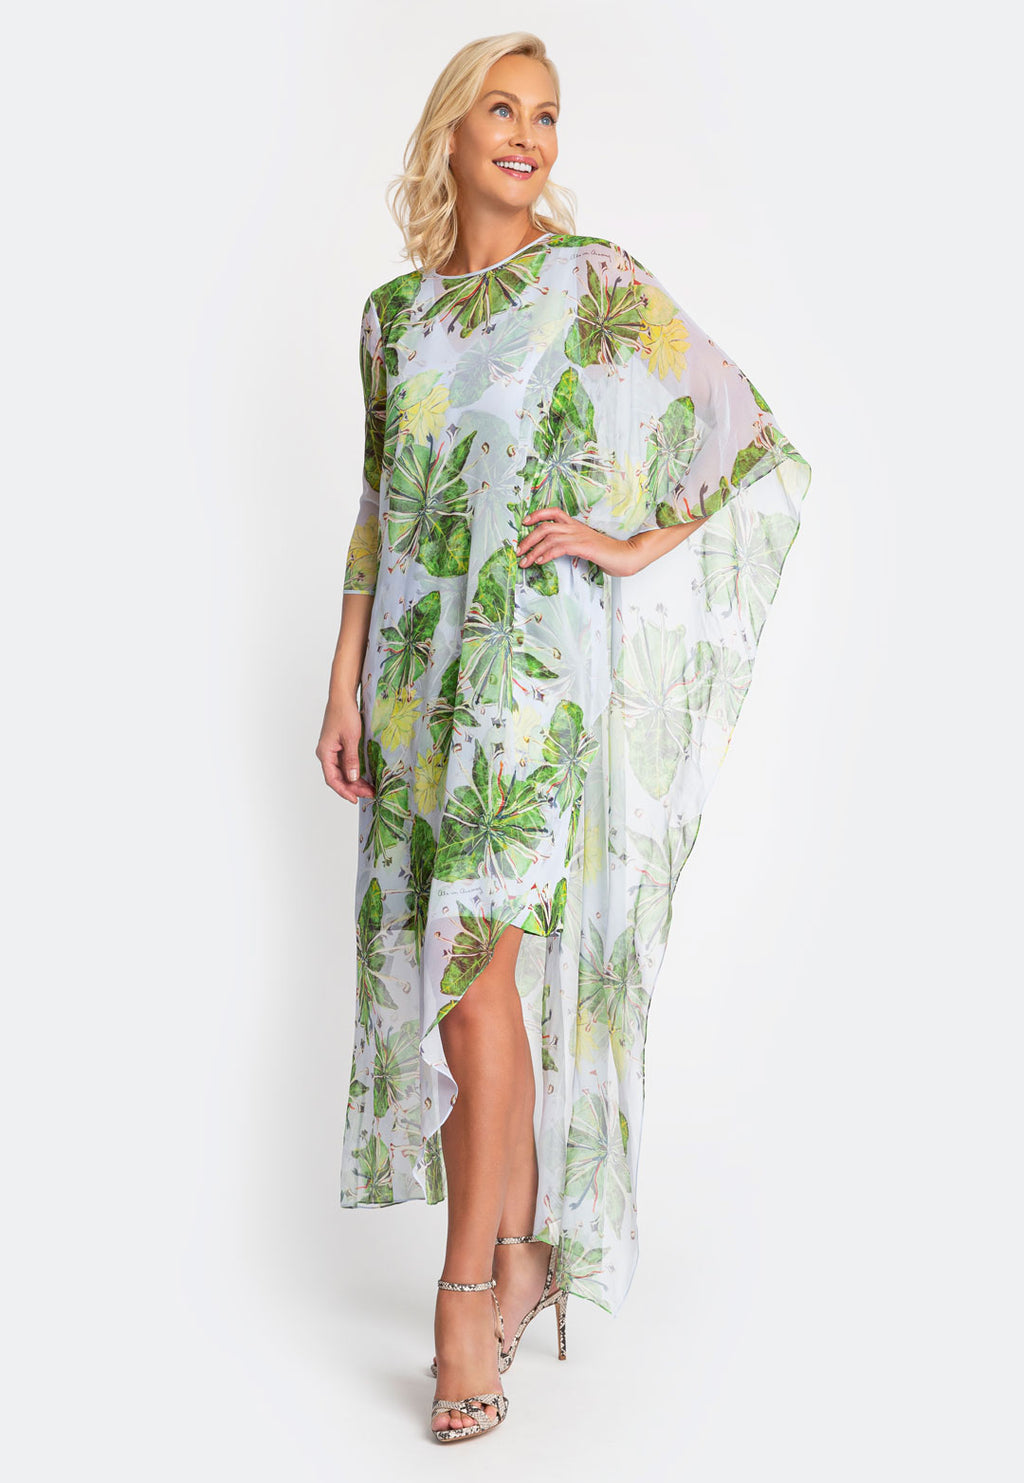 Model in green asymmetrical printed poncho with one three quarter length sleeve